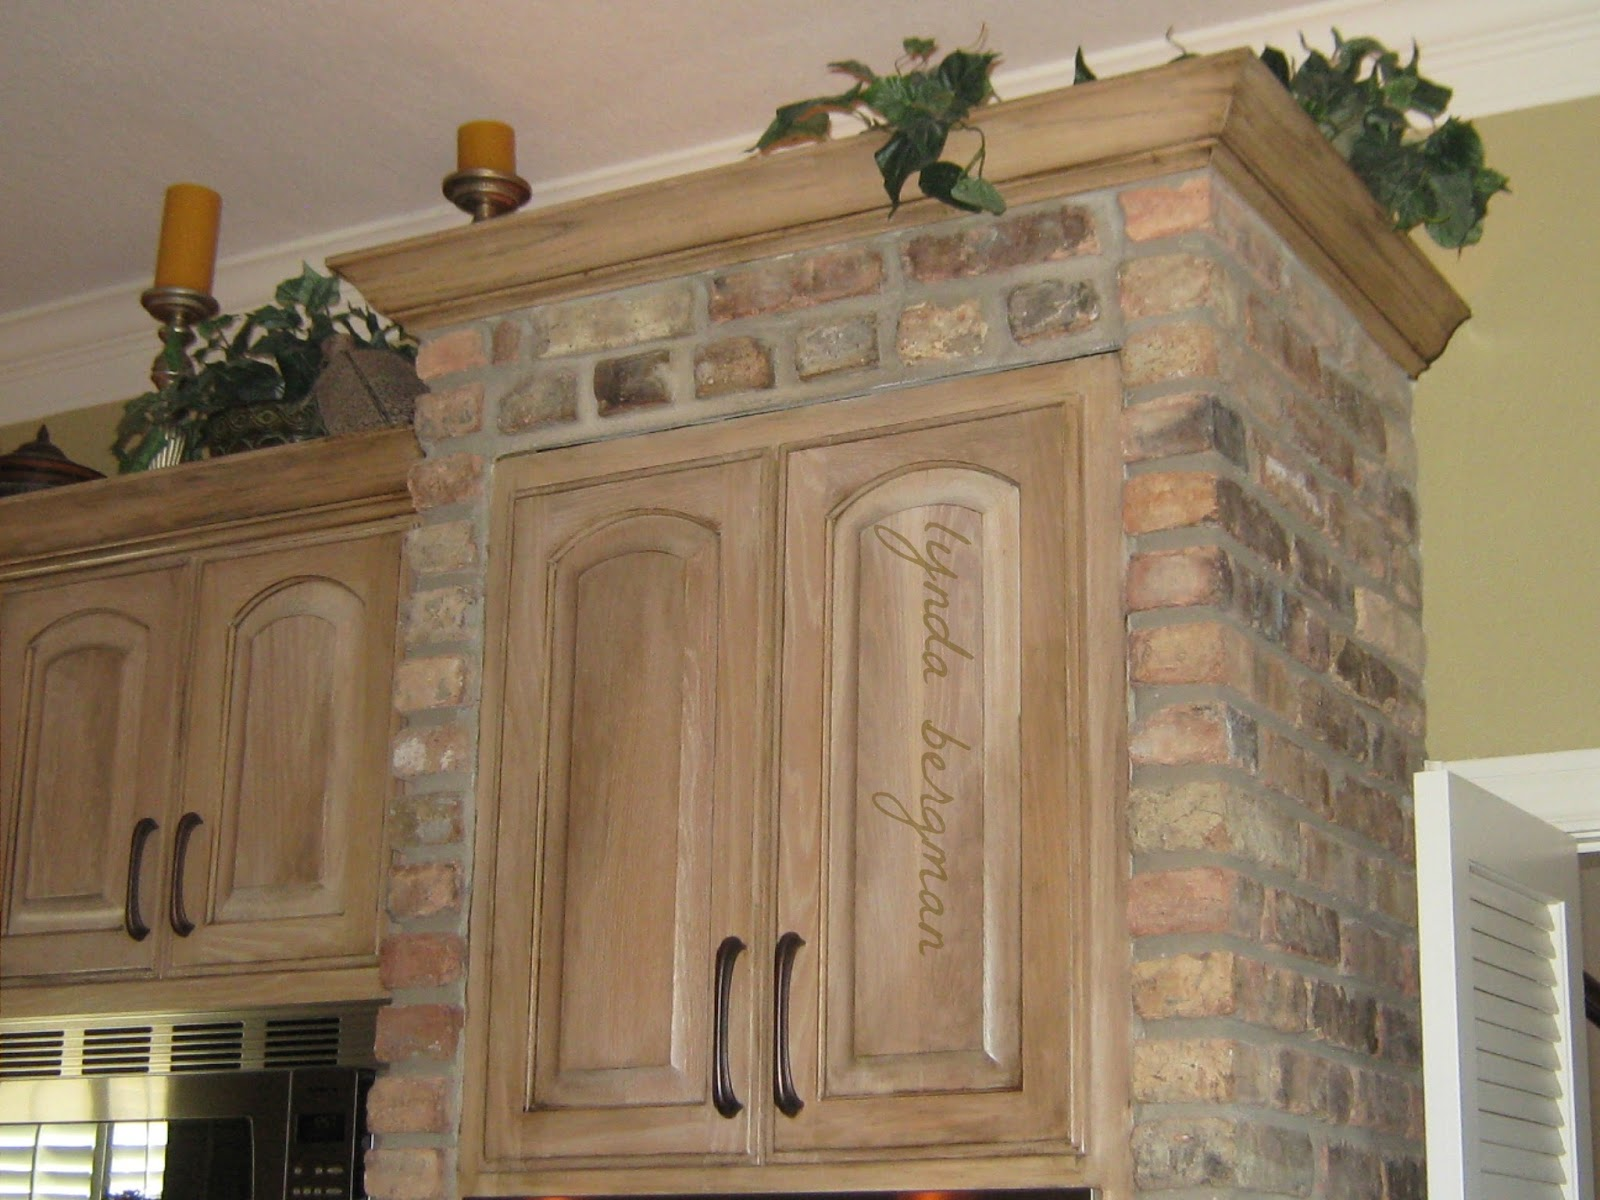 Best Kitchen Gallery: Lynda Bergman Decorative Artisan Distressing Aging Pickled White of White Pickled Cabinets Kitchen on rachelxblog.com